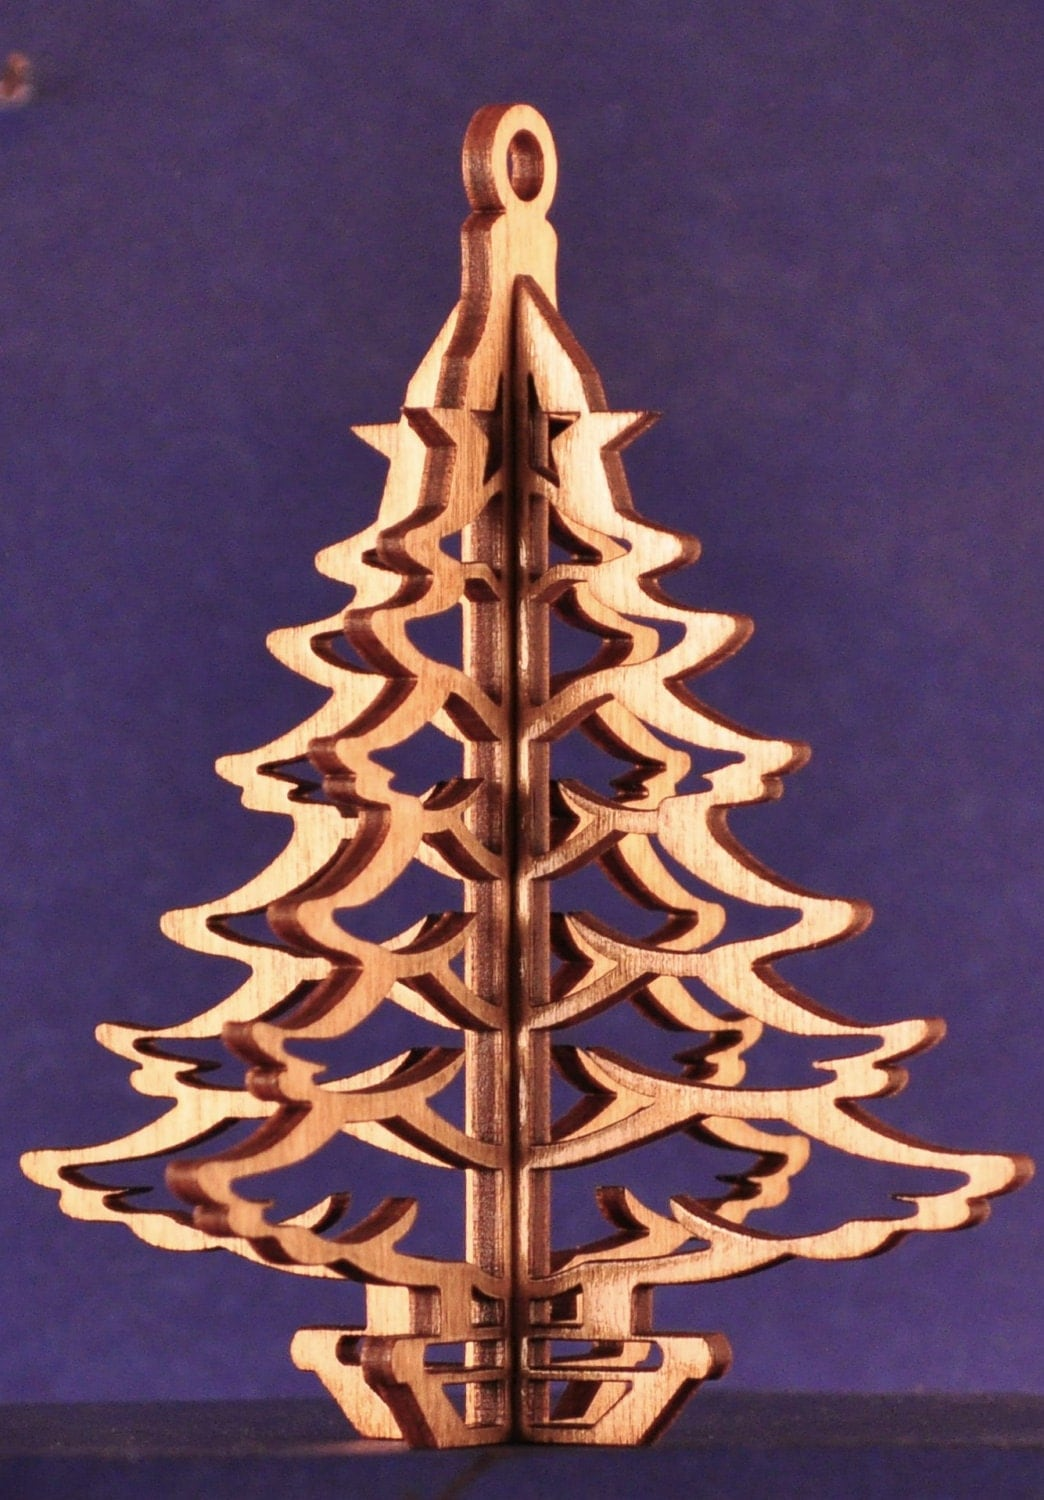 3-D Wood Christmas Tree Ornament